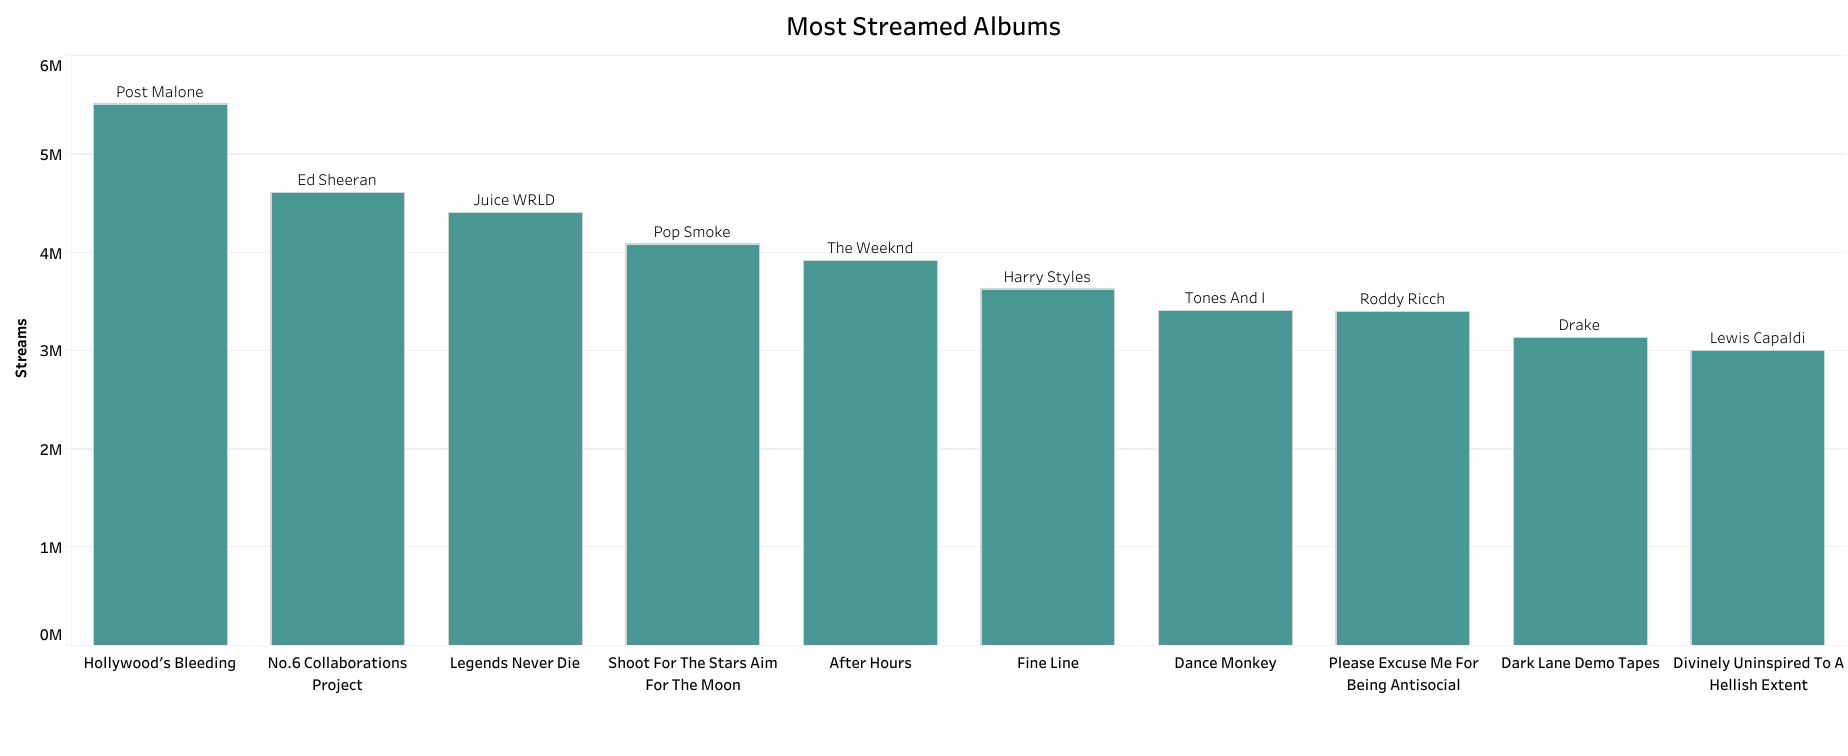 Most Streamed Albums in South Africa